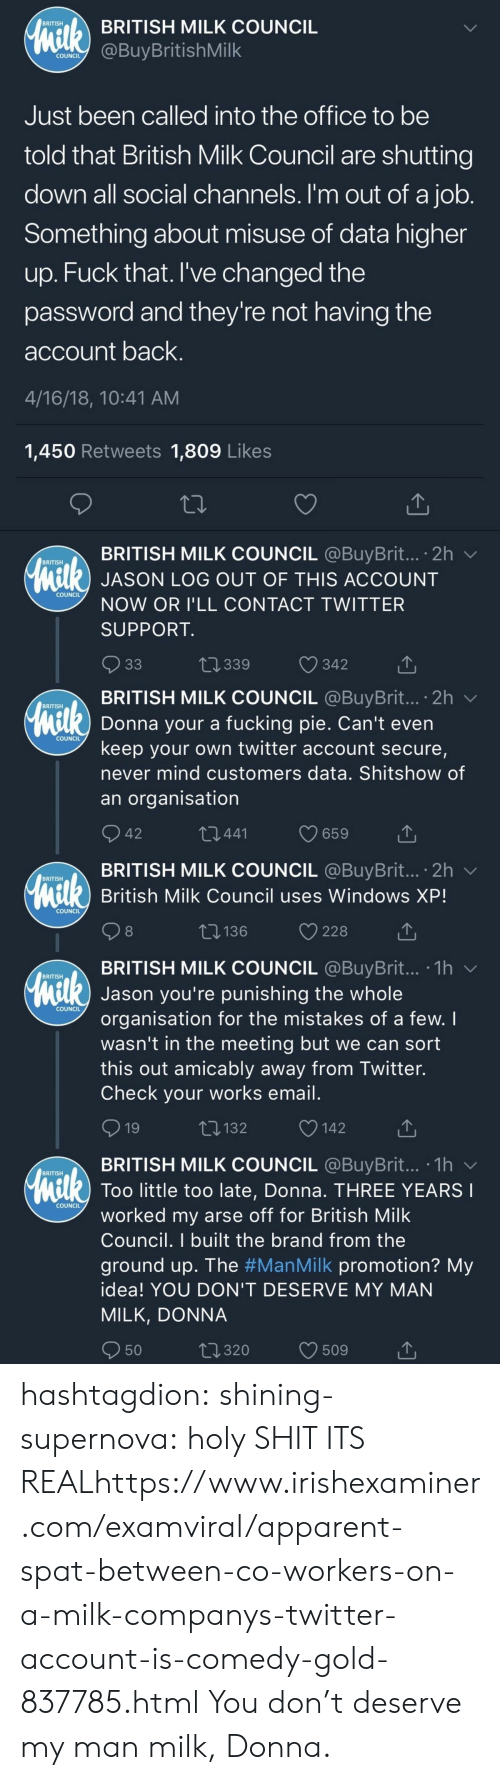 Fucking, Shit, and The Office: BRITISH MILK COUNCIL  BRITISH  COundBuyBritishMilk  COUNCIL  Just been called into the office to be  told that British Milk Council are shutting  down all social channels. I'm out of a job  Something about misuse of data higher  up. Fuck that. I've changed the  password and they're not having the  account back  4/16/18, 10:41 AM  1,450 Retweets 1,809 Like:s  BRITISH MILK COUNCIL @BuyBrit...。2h ﹀  BRITISH  l) JASON LOG OUT OF THIS ACCOUNT  COUNCIL  NOW OR I'LL CONTACT TWITTER  SUPPORT  t 339  342   . BRITISH MILK COUNCIL @BuyBrit...。2h ﹀  BRITISH  Donna your a fucking pie. Can't even  keep your own twitter account secure,  never mind customers data. Shitshow of  an organisation  COUNCIL  42  441  BRITISH MILK COUNCIL @BuyBrit... 2h v  British Milk Council uses Windows XP!  BRITISH  COUNCIL  8  t: 136  228  TBRITISH MILK COUNCIL @BuyBrit... .1hv  BRITISH  Jason you're punishing the whole  organisation for the mistakes of a few. I  wasn't in the meeting but we can sort  this out amicably away from Twitter.  Check your works email  COUNCIL  132  142  BRITISH MILK COUNCIL @BuyBrit...-1h  BRITISH  Too little too late, Donna. THREE YEARS  COUNCIL  worked my arse off for British Milk  Council. I built the brand from the  ground up. The #ManMilk promotion? My  idea! YOU DON'T DESERVE MY MAN  MILK, DONNA  50  320  509 hashtagdion:  shining-supernova:  holy SHIT ITS REALhttps://www.irishexaminer.com/examviral/apparent-spat-between-co-workers-on-a-milk-companys-twitter-account-is-comedy-gold-837785.html  You don't deserve my man milk, Donna.